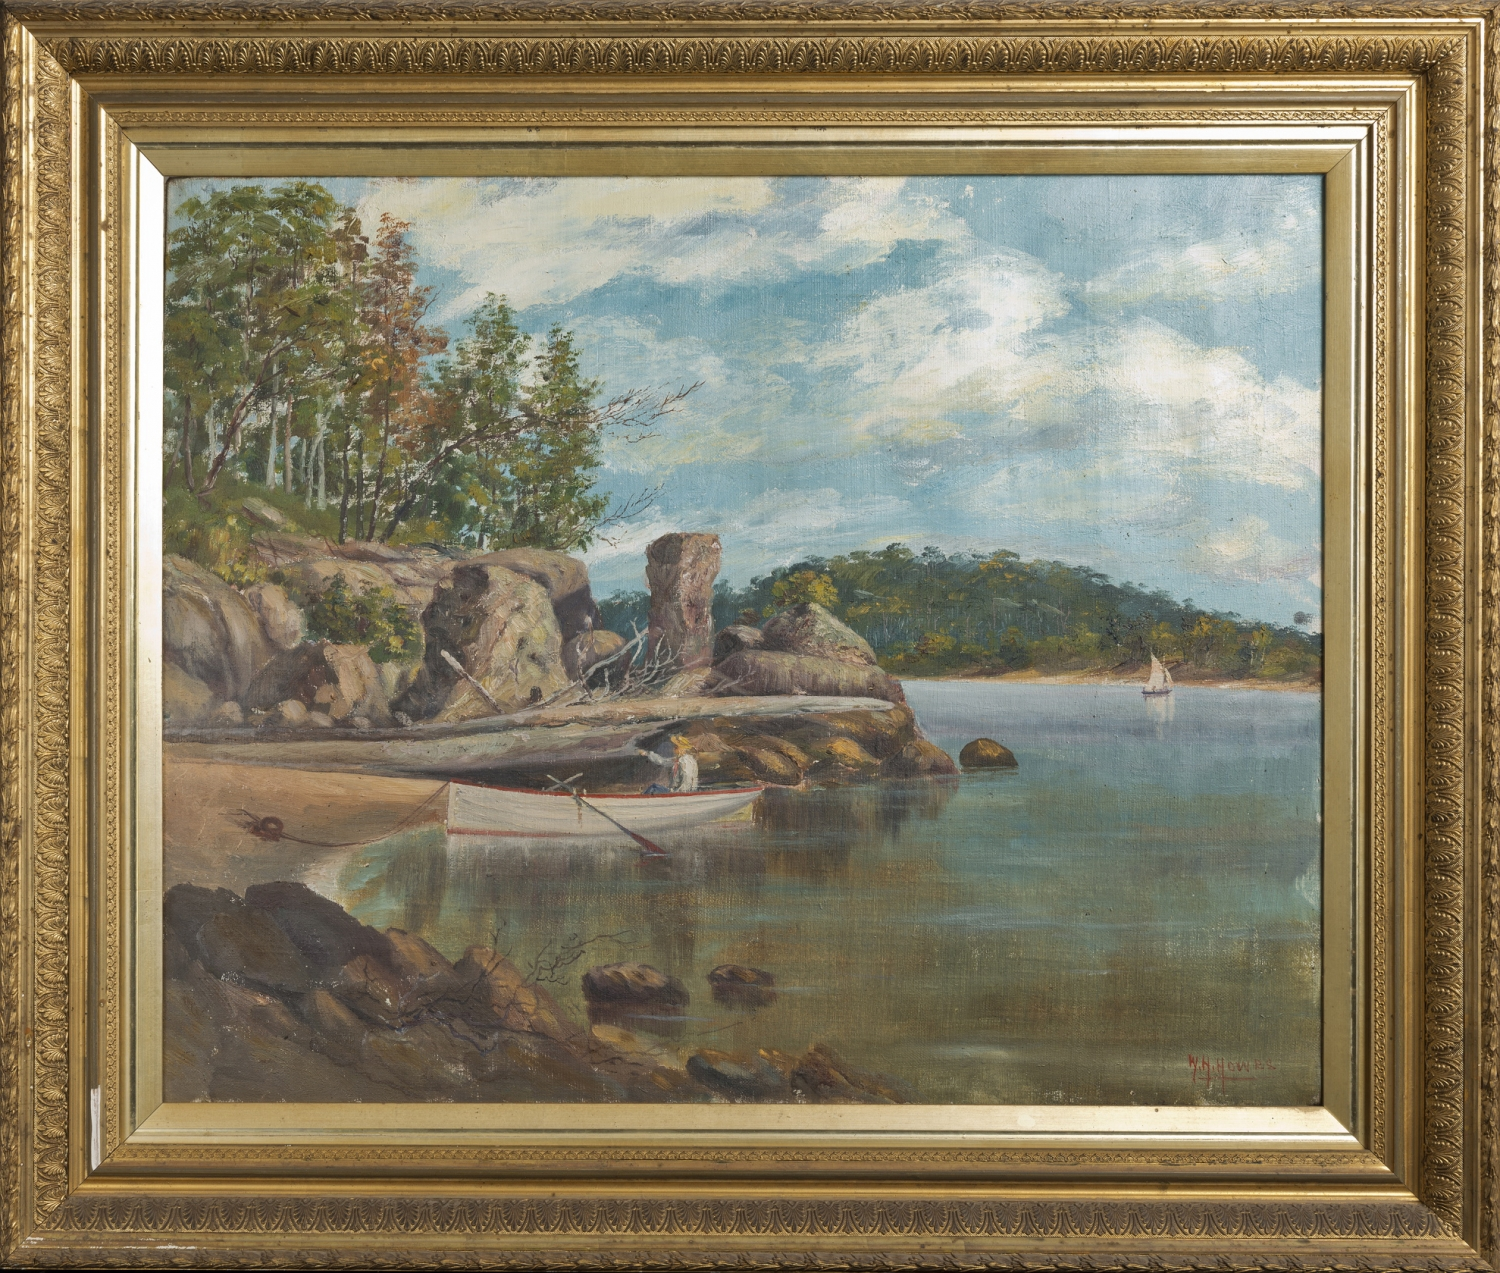 Landscape painting in golden frame.